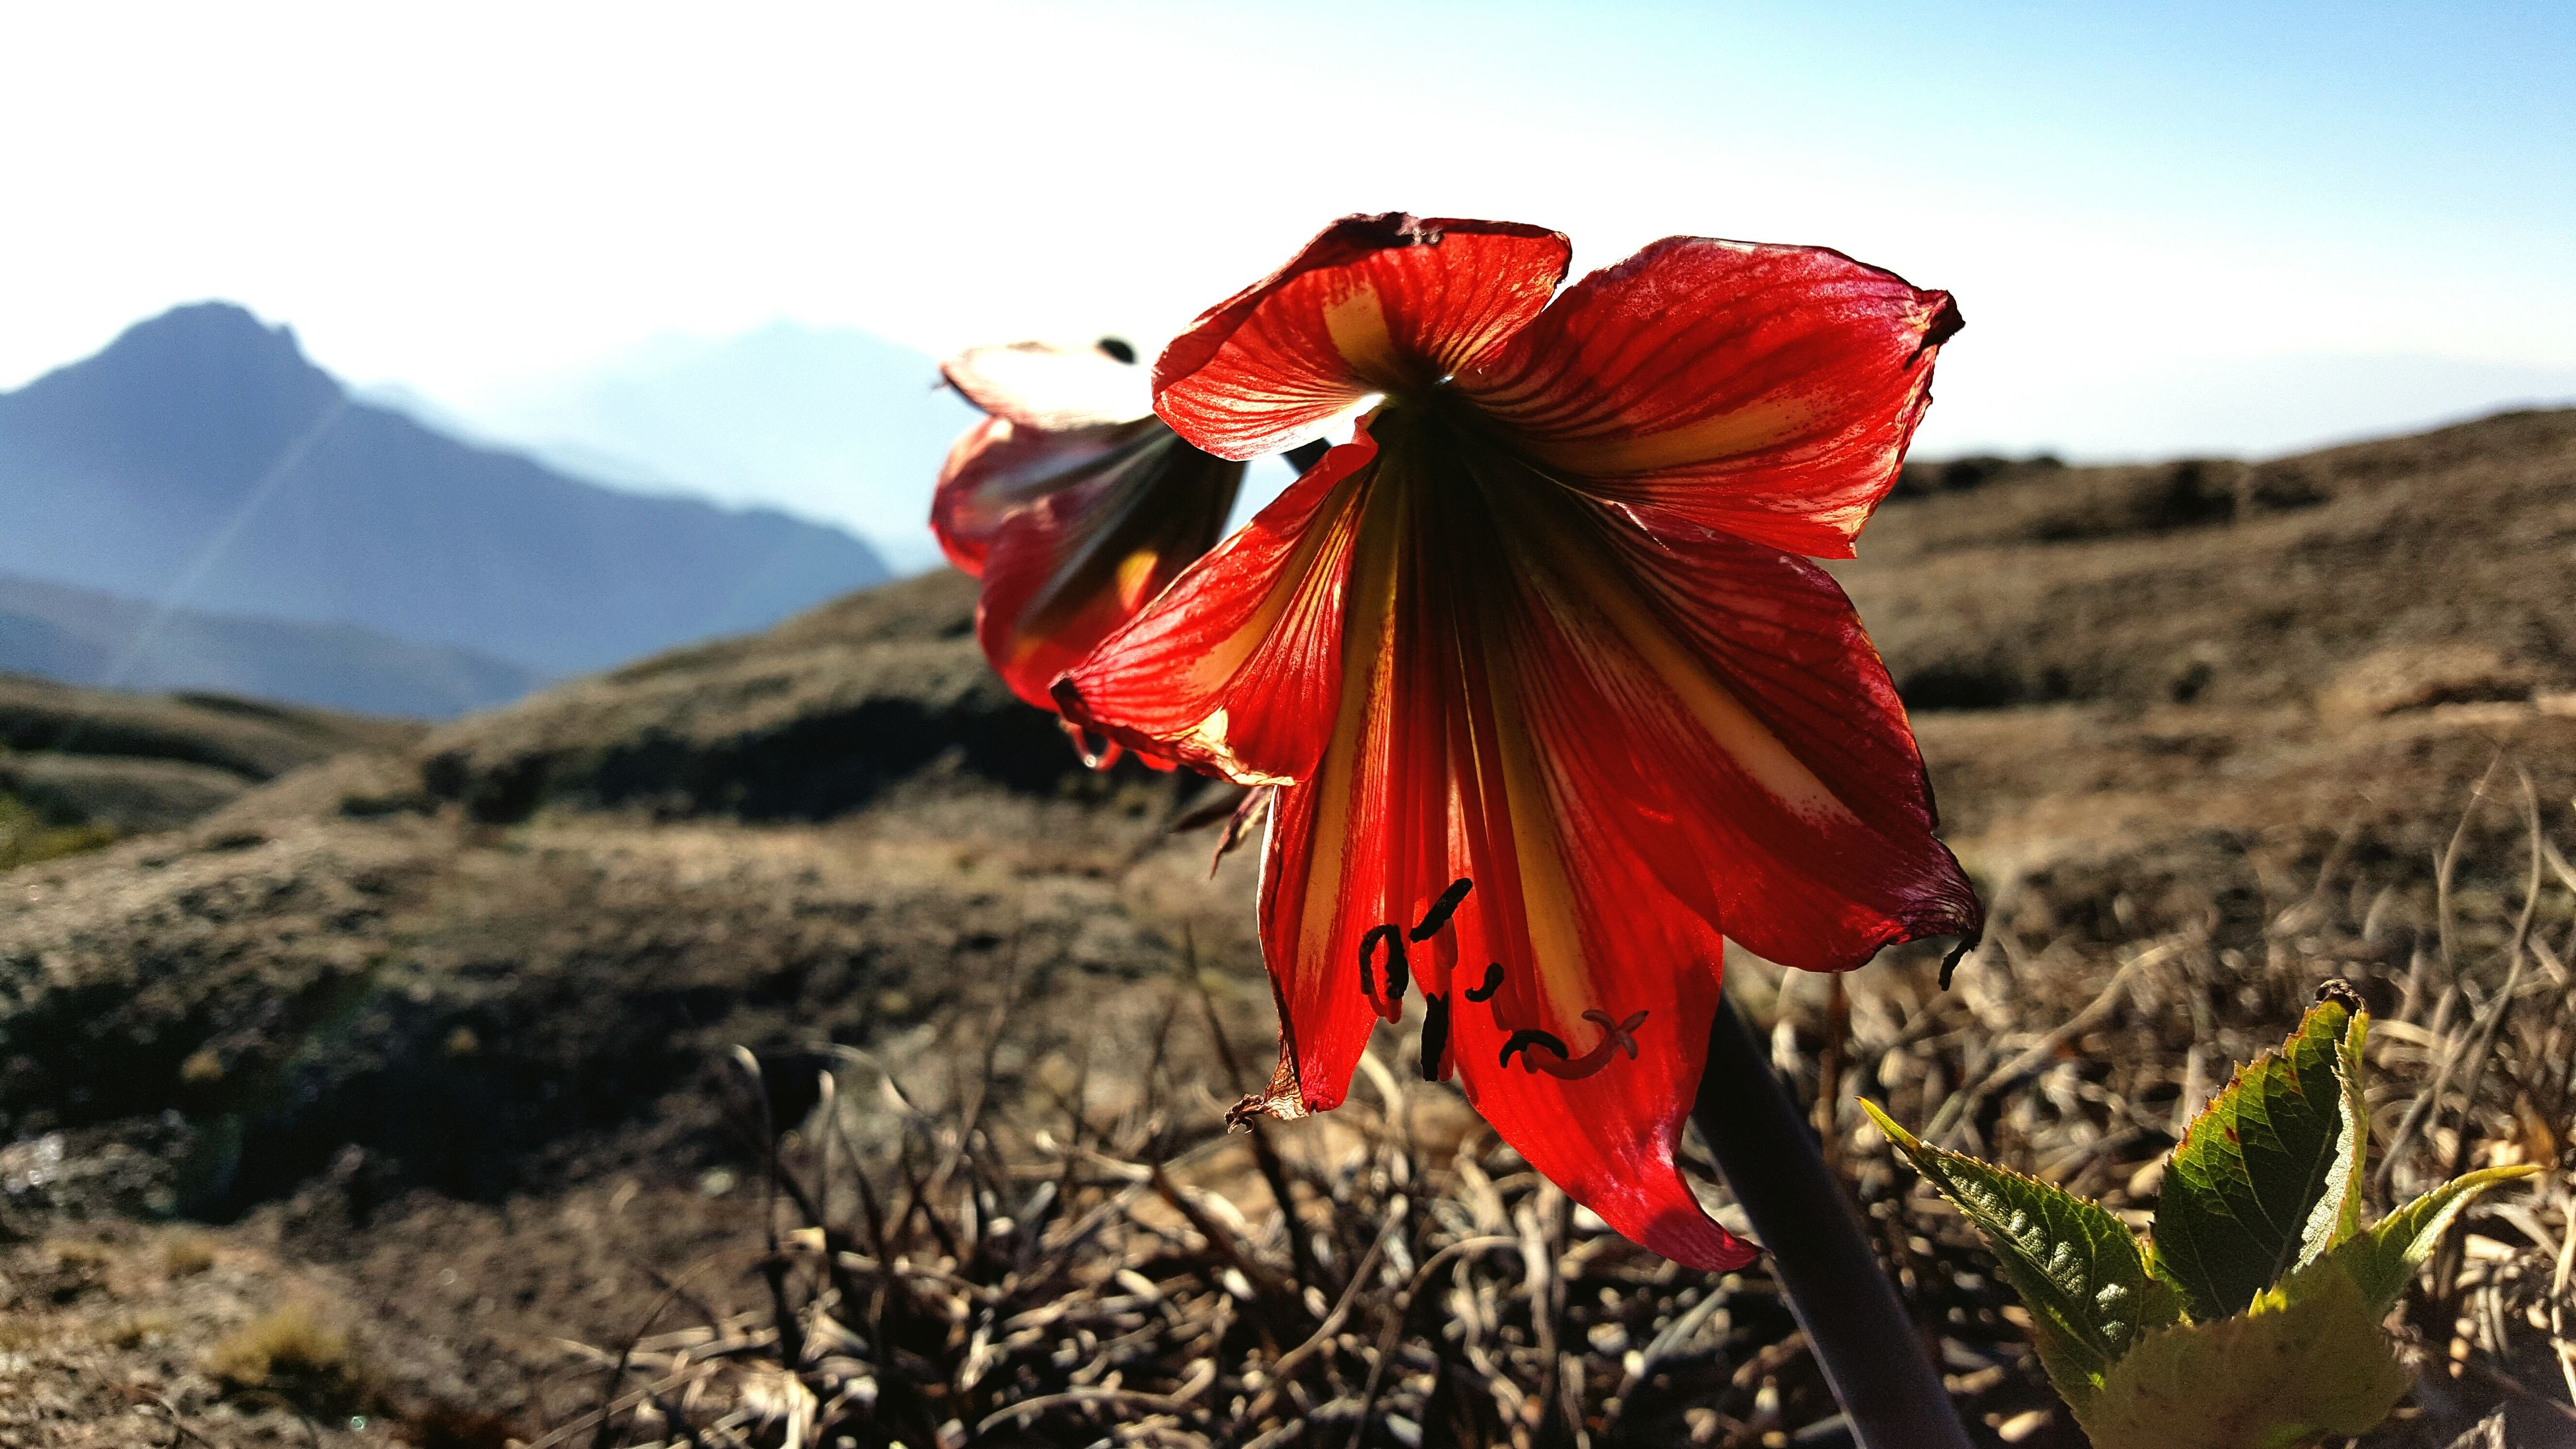 mountain, red, landscape, non-urban scene, mountain range, beauty in nature, flower, focus on foreground, selective focus, scenics, tranquil scene, tranquility, nature, fragility, growth, vibrant color, remote, valley, flower head, day, sky, mountain peak, majestic, freshness, physical geography, red color, petal, in bloom, wildflower, rural scene